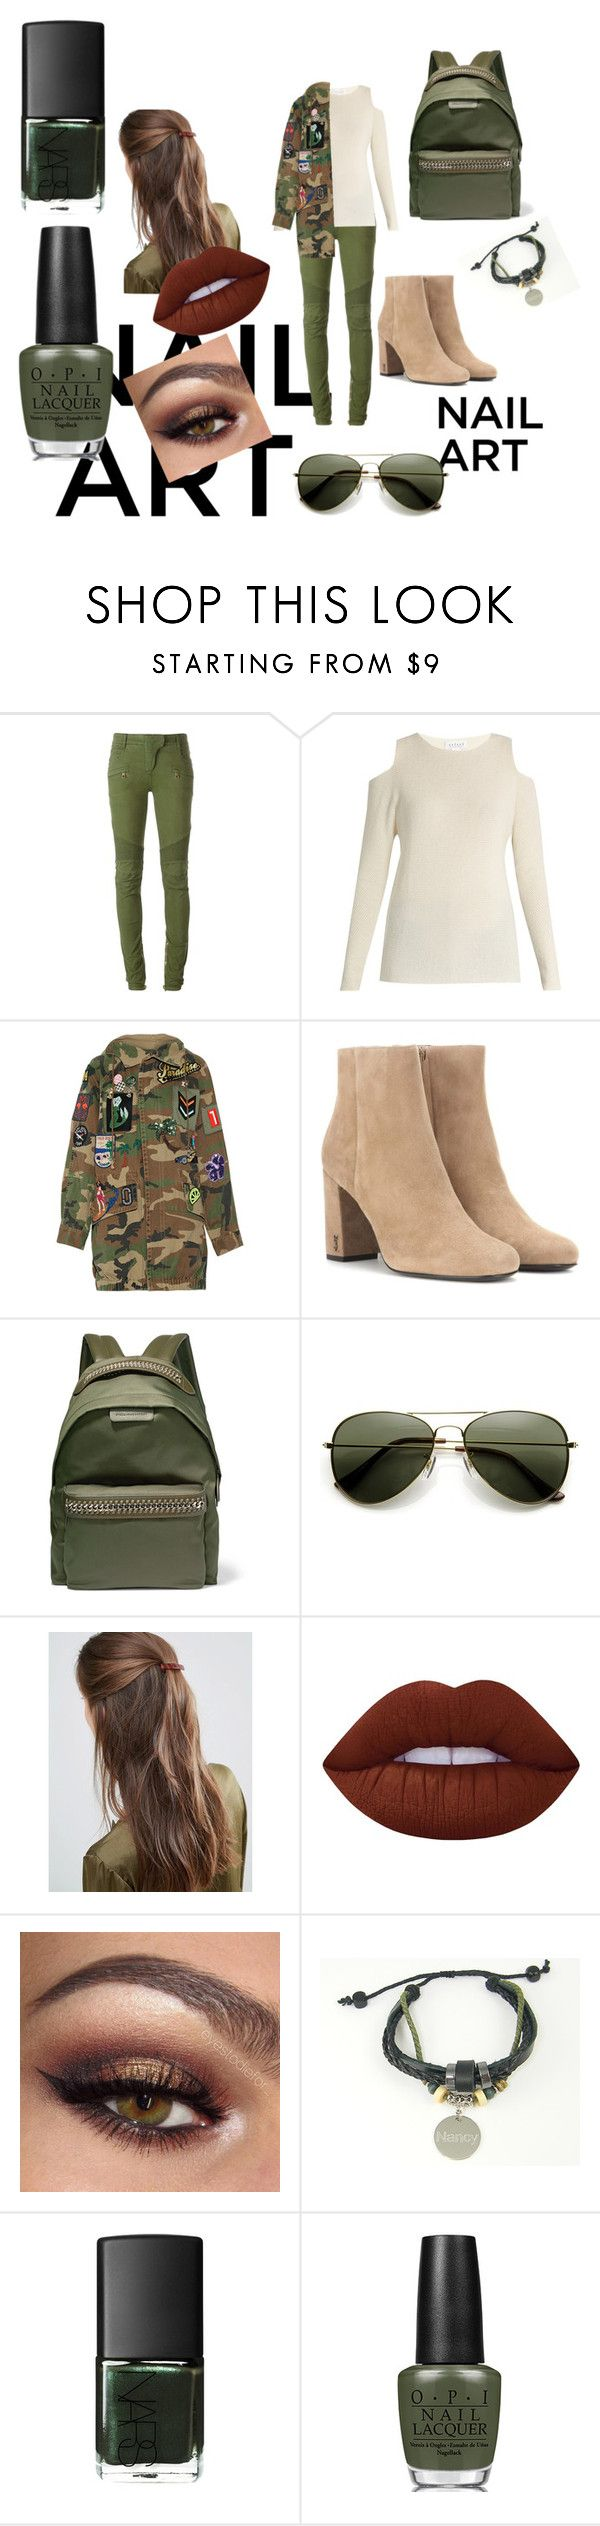 """""""Green With Envy"""" by ana-souza-2 ❤ liked on Polyvore featuring Balmain, Velvet by Graham & Spencer, Marc Jacobs, Yves Saint Laurent, STELLA McCARTNEY, DesignB London, Lime Crime, Liberty and OPI"""